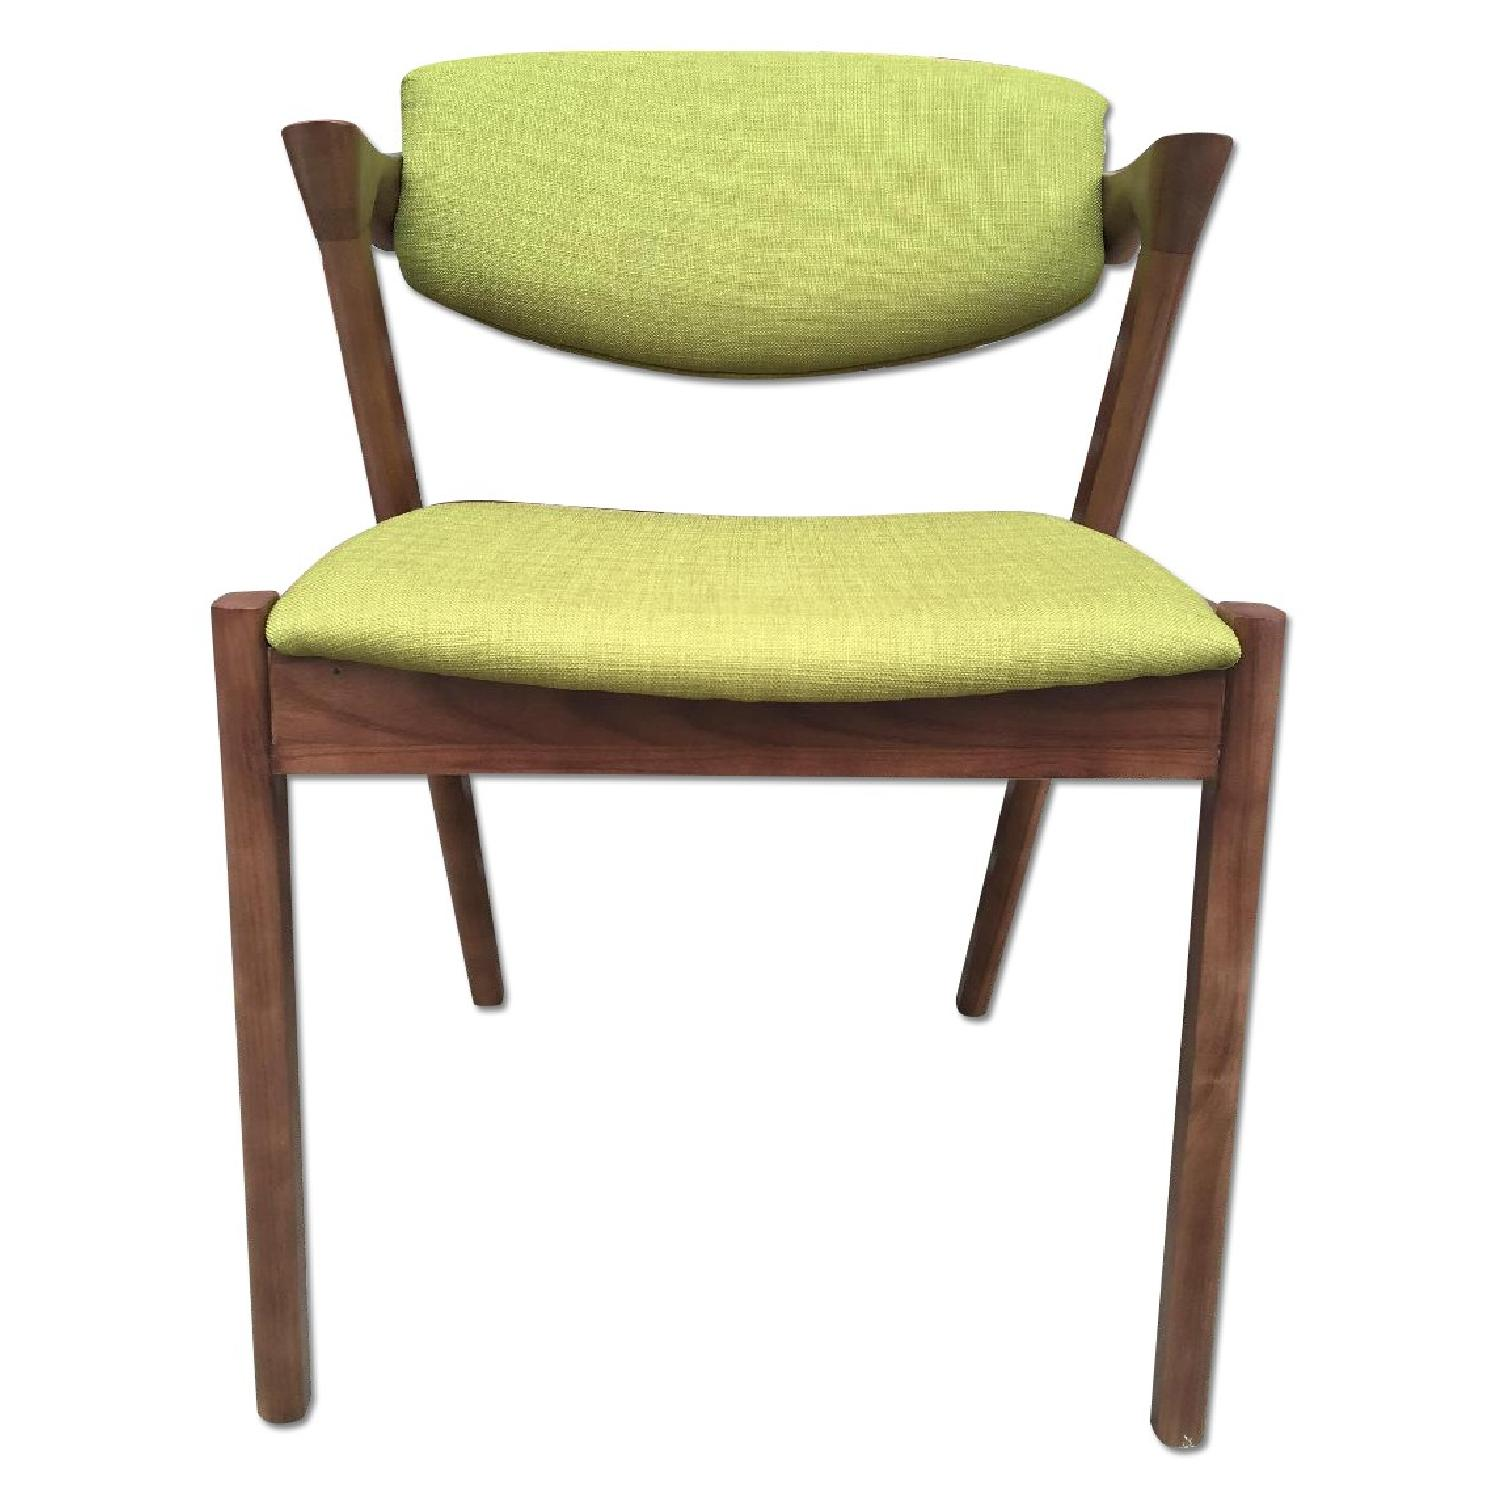 Mid century danish modern dining arm chairs aptdeco for Mid century danish modern chair